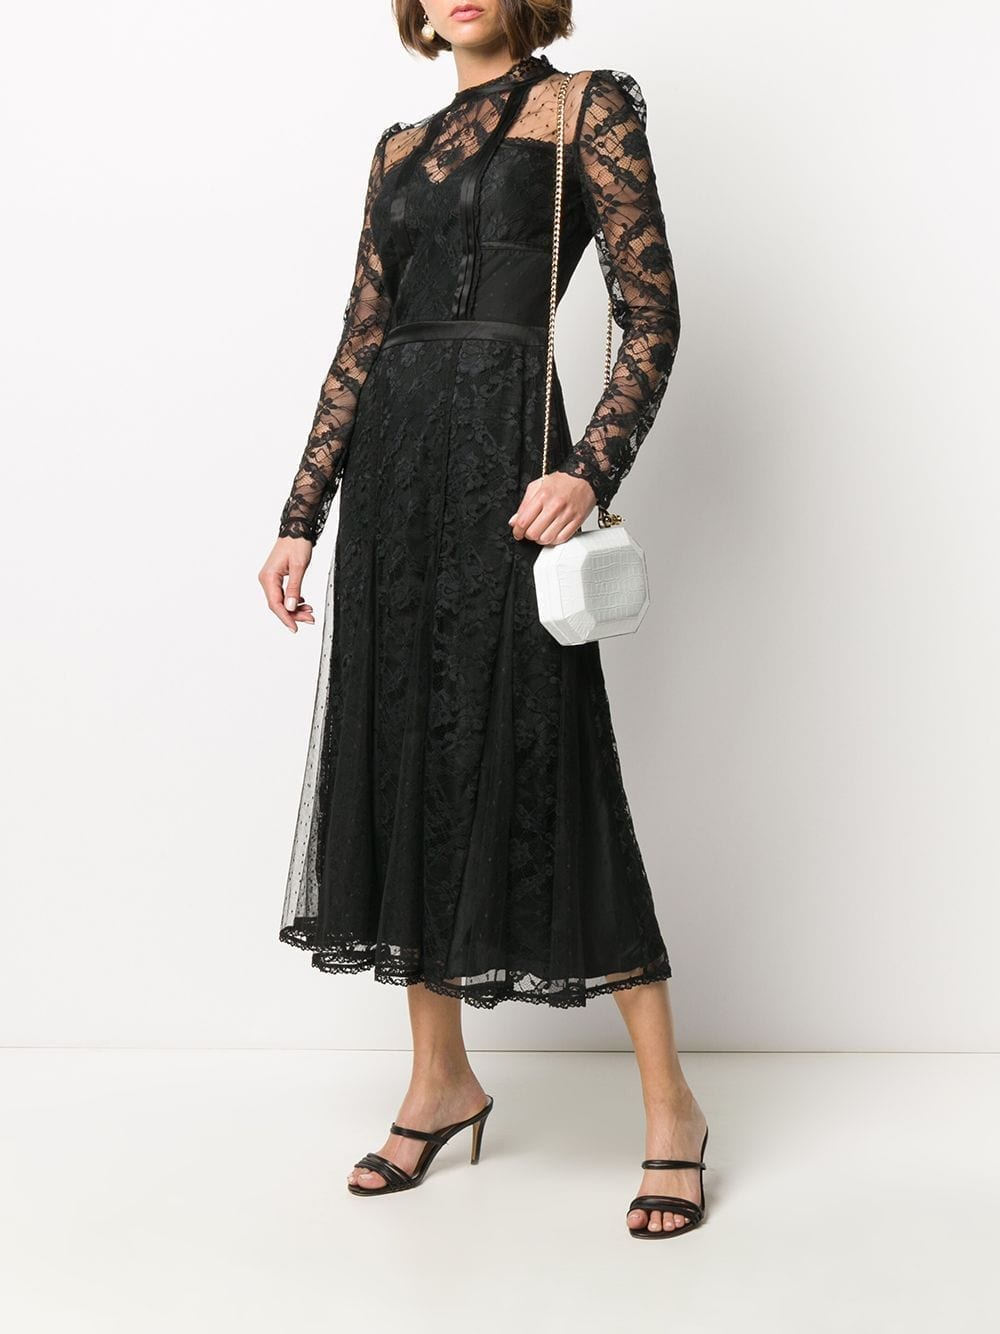 TEMPERLEY LONDON Lace Panel Dress